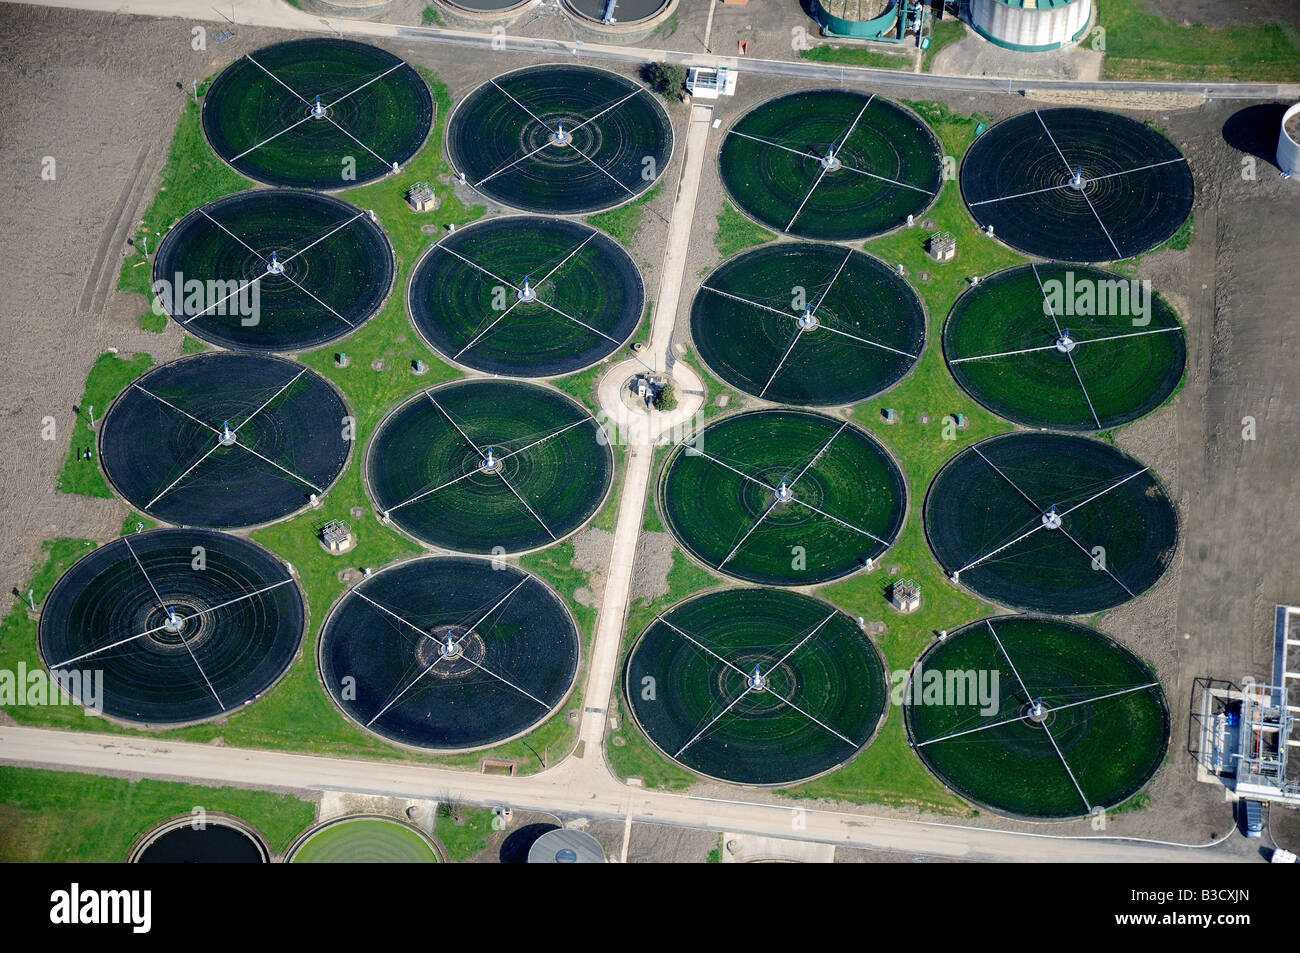 Sewage Works Filter Beds, Aerial view, Nr Leeds, Northern England - Stock Image